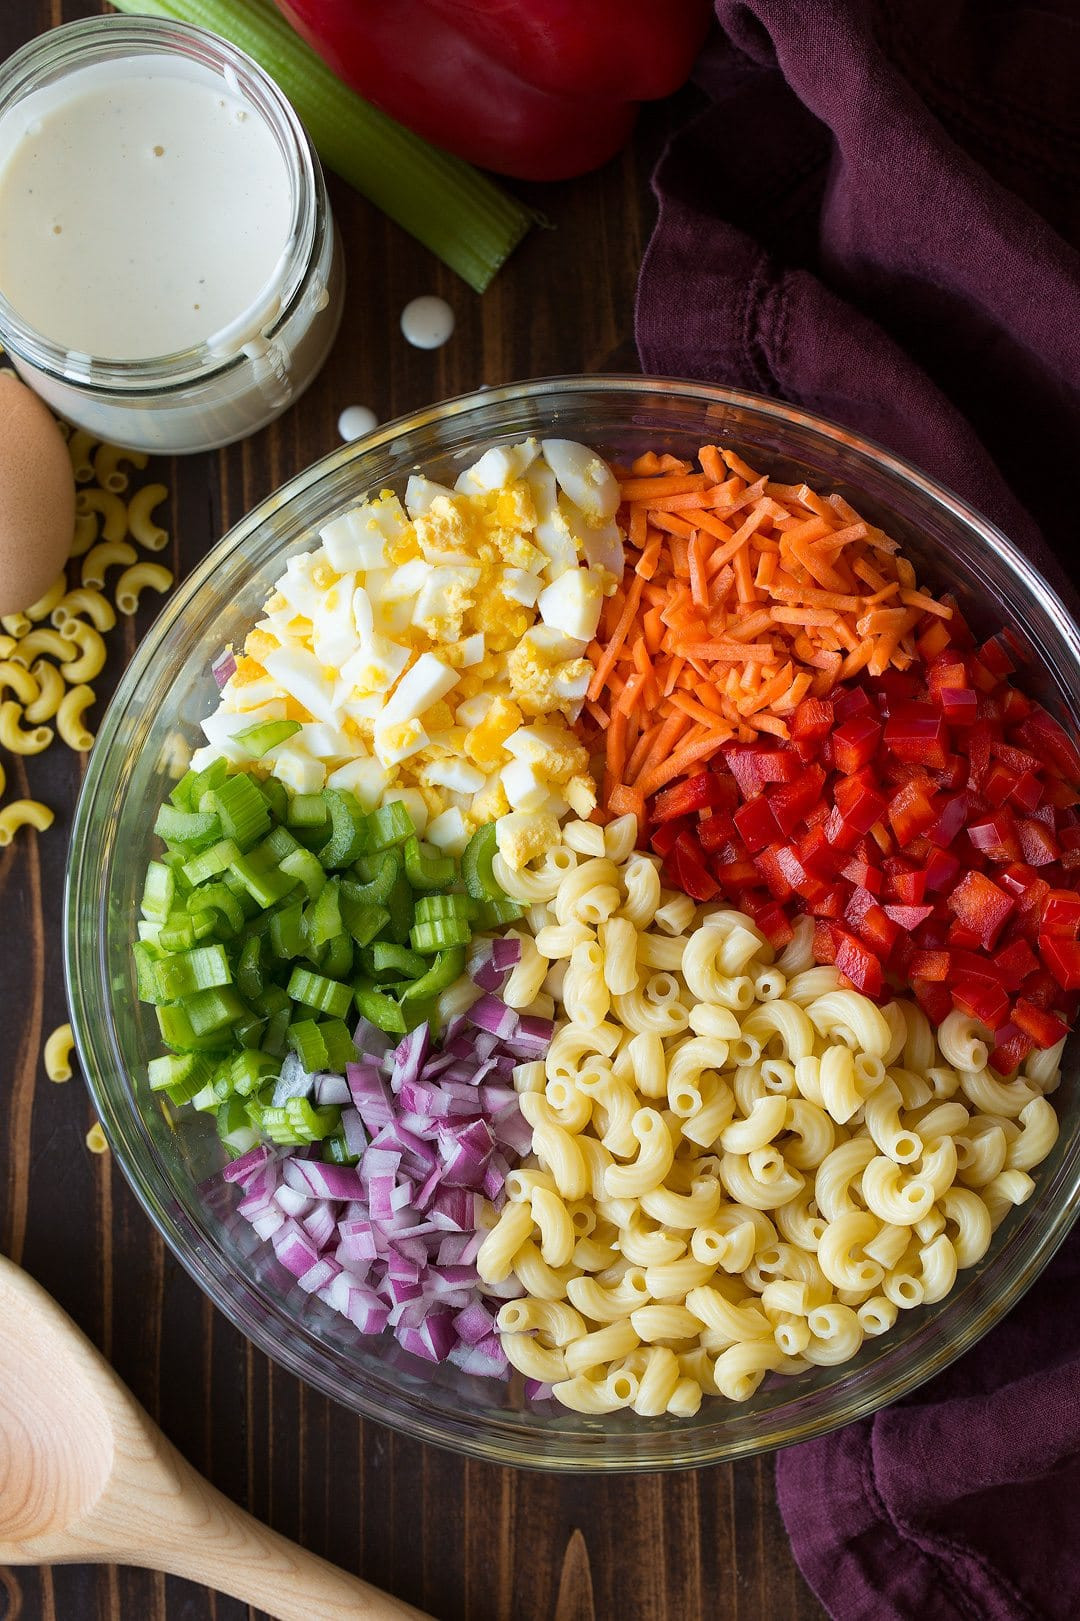 Easy Pasta Salad Recipes  Classic Macaroni Salad Easy Go To Side Dish  Cooking